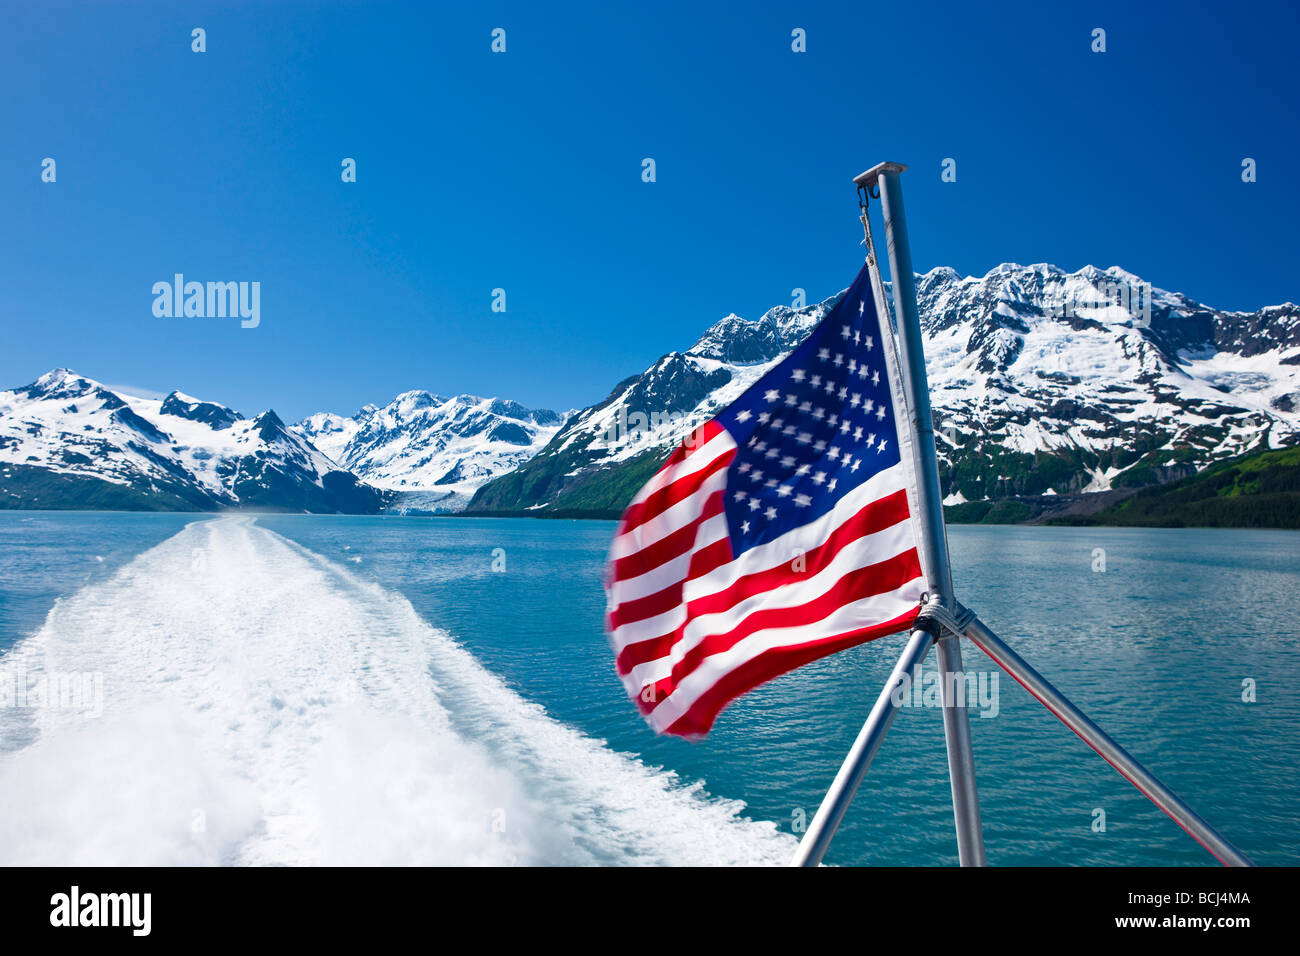 View of Prince Wiliam Sound and the American flag flown from the deck of a tour boat, Prince William Sound, Alaska - Stock Image